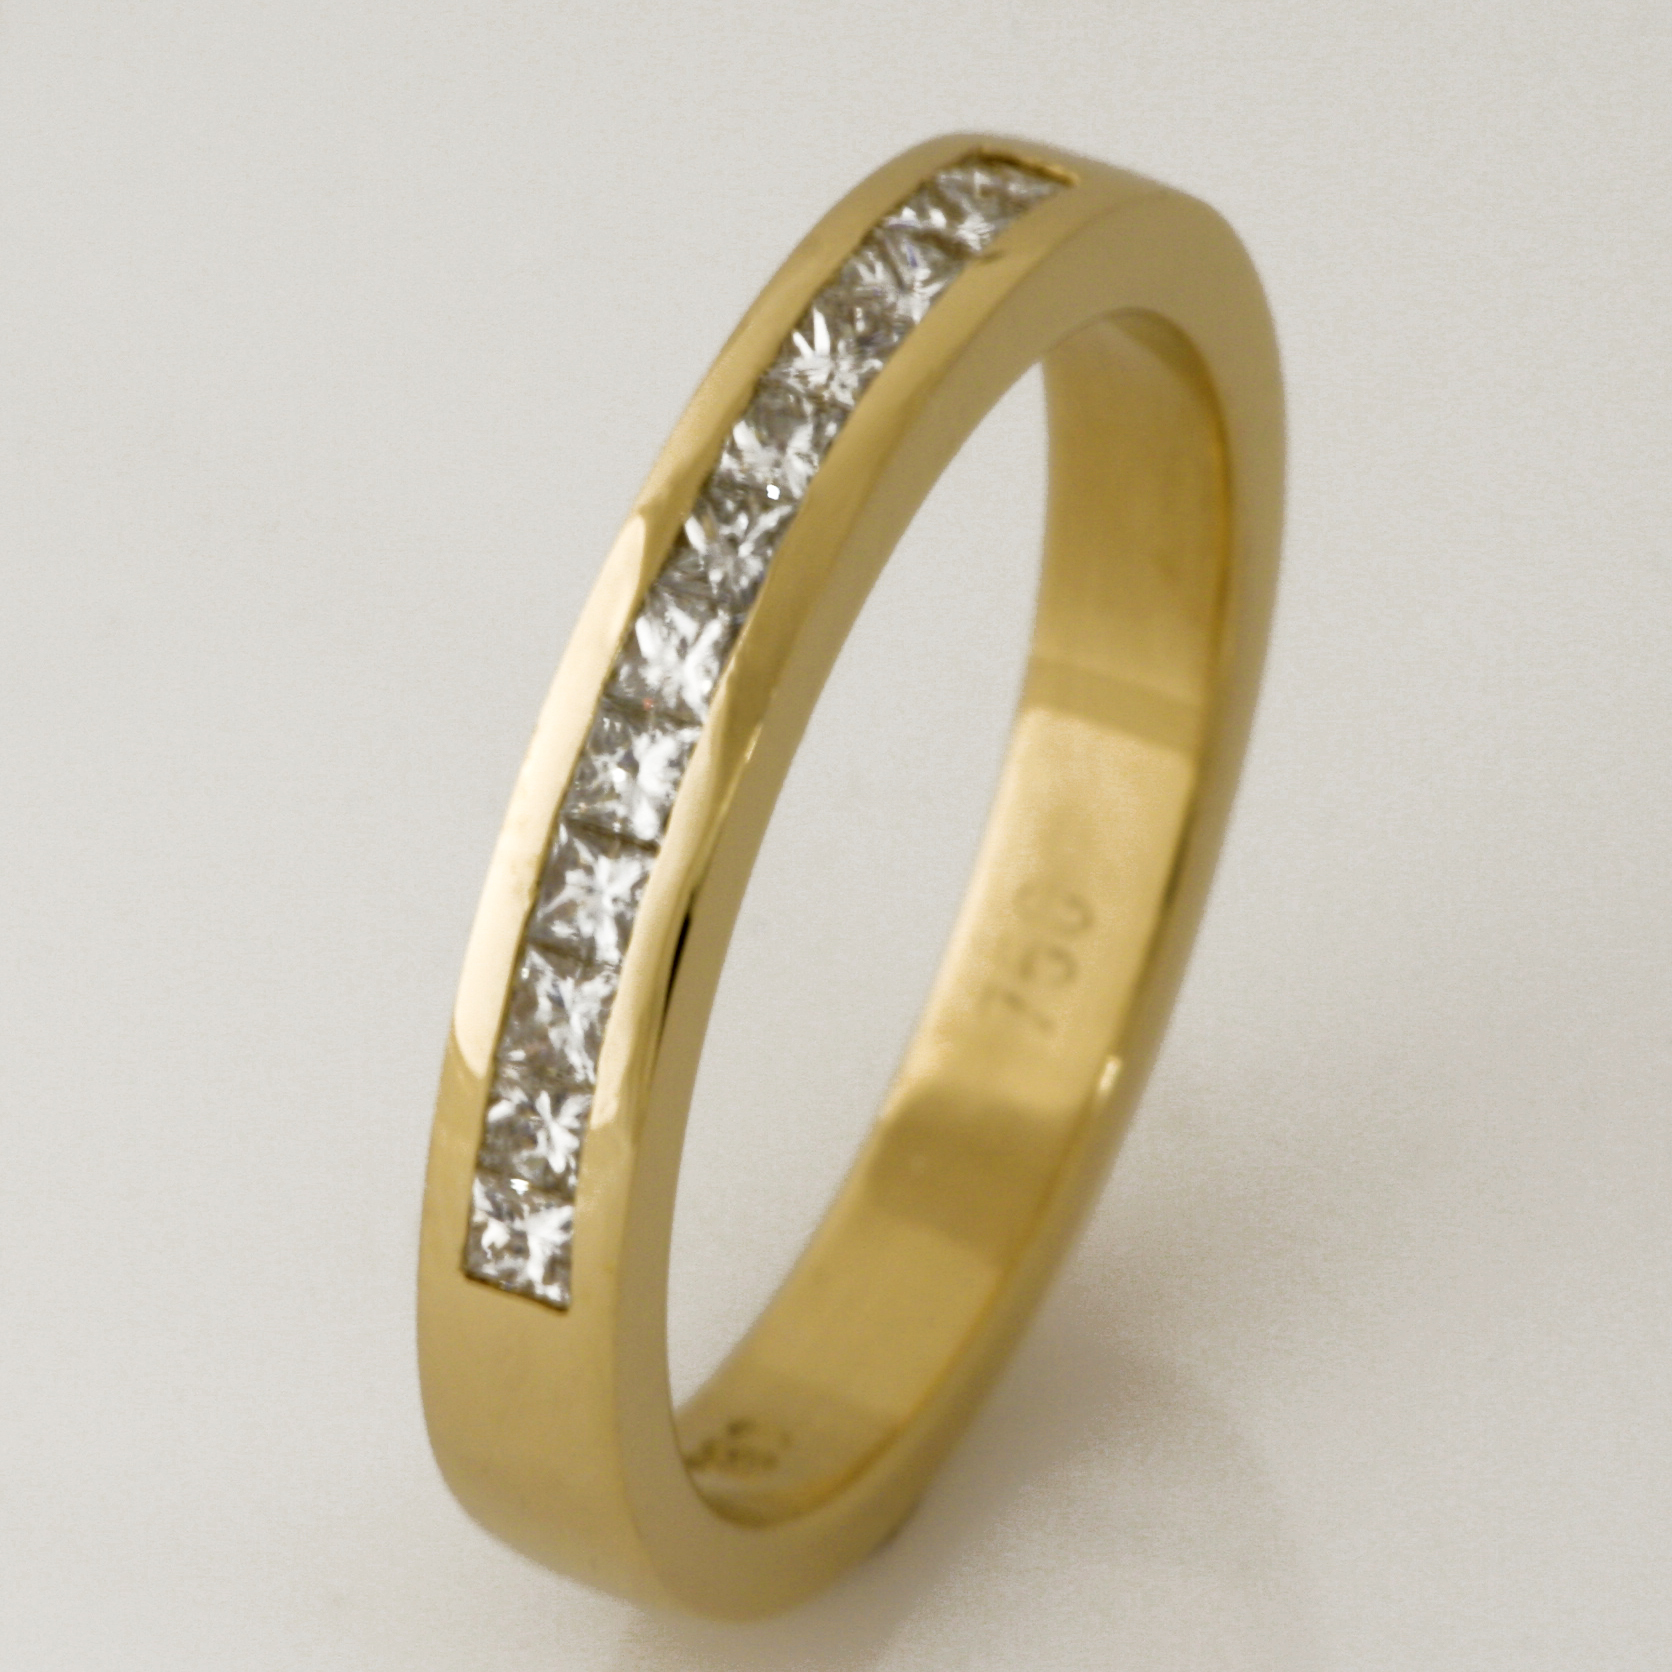 Handmade ladies 18ct yellow gold princess cut diamond wedding ring